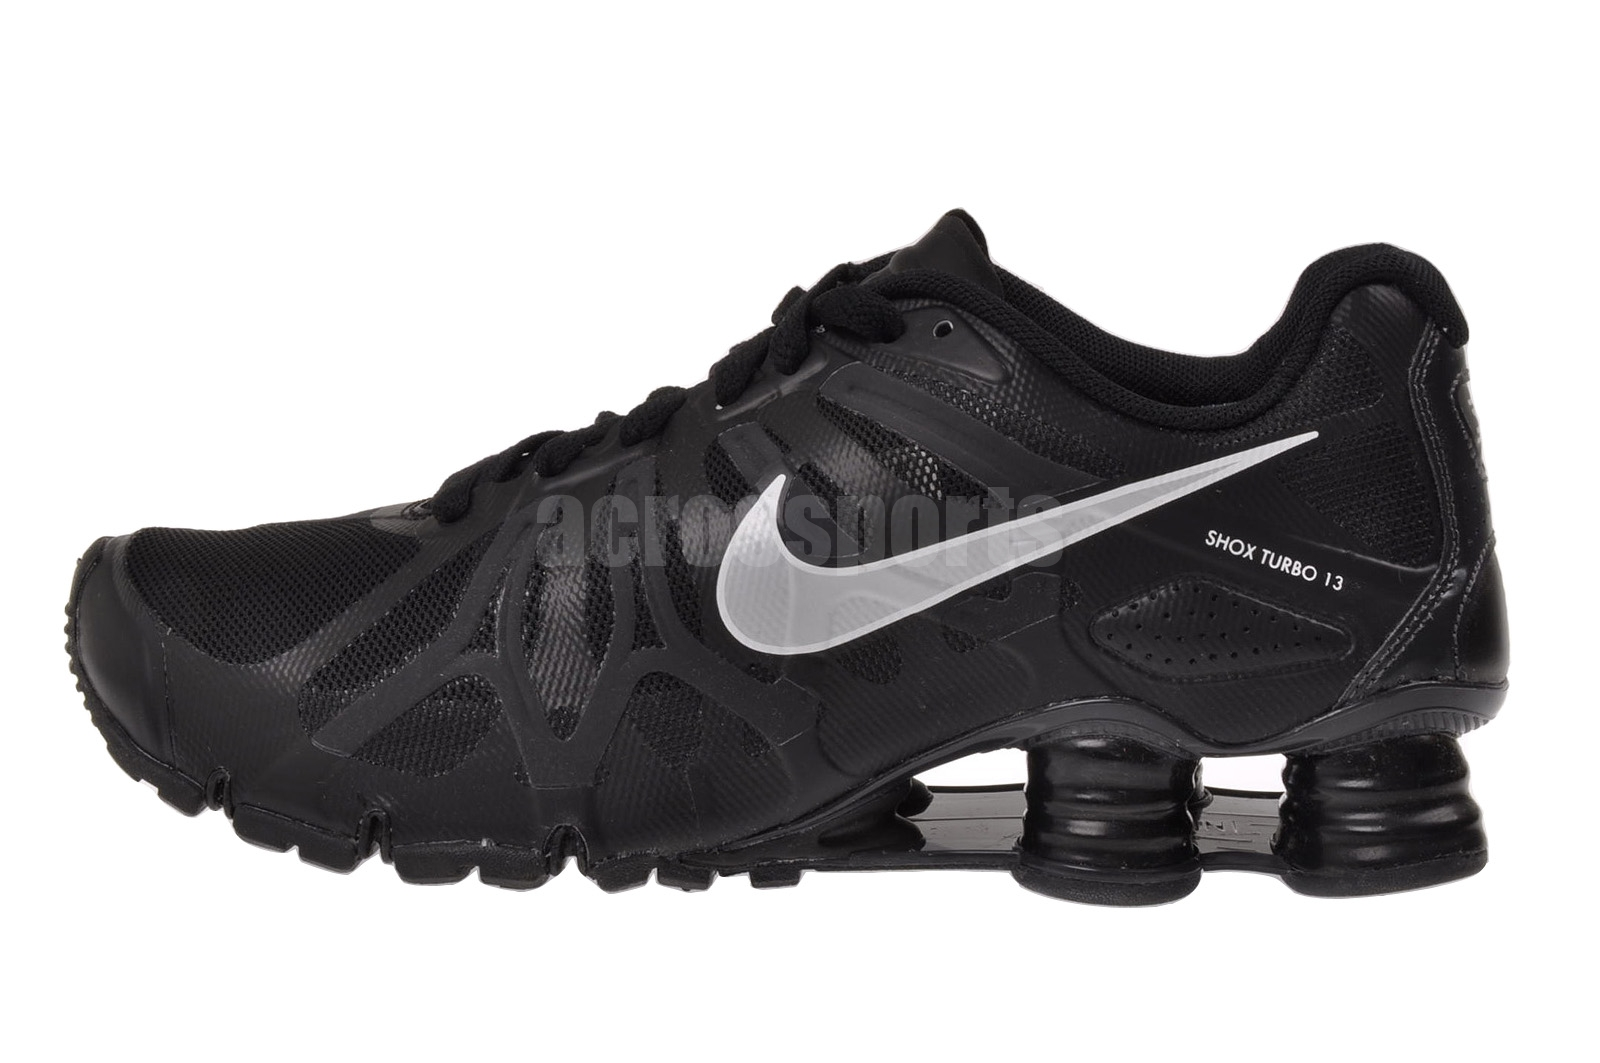 Nike Shox Imported For Sale On Amazon Ebay  f19bb741e